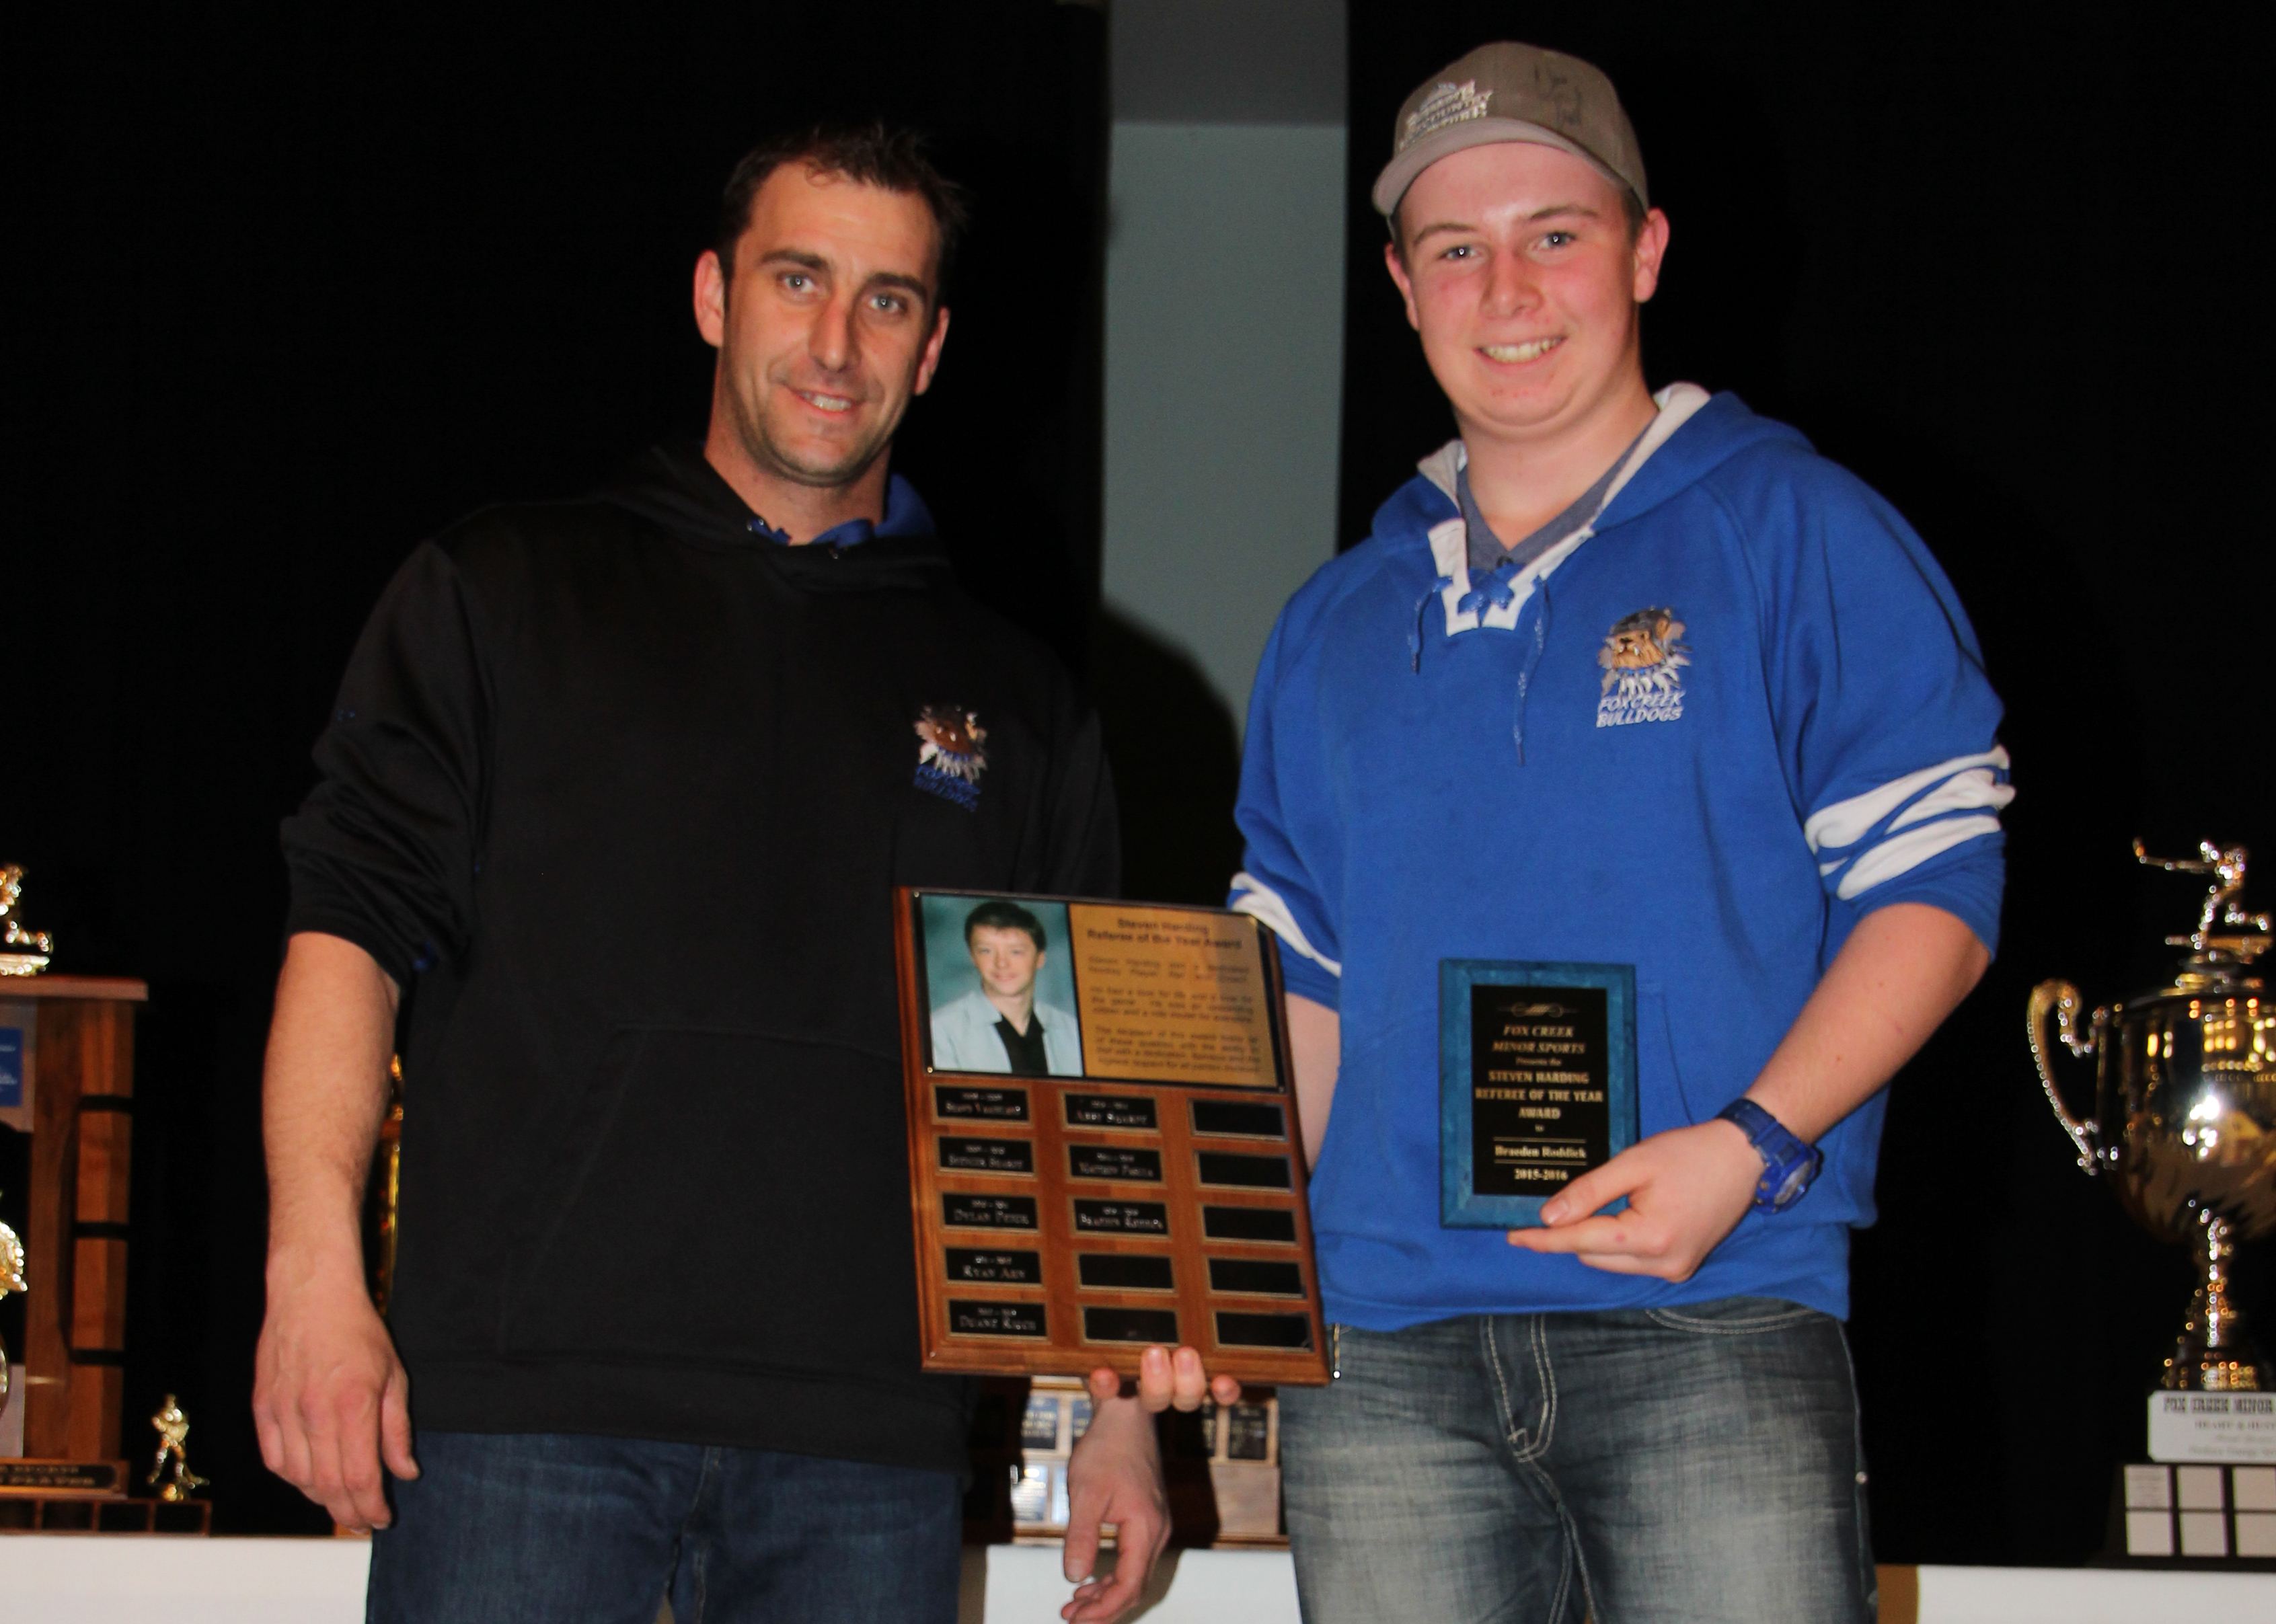 Tyler Scobey presents the Steven Harding Referee of the Year award to Braeden Roddick.